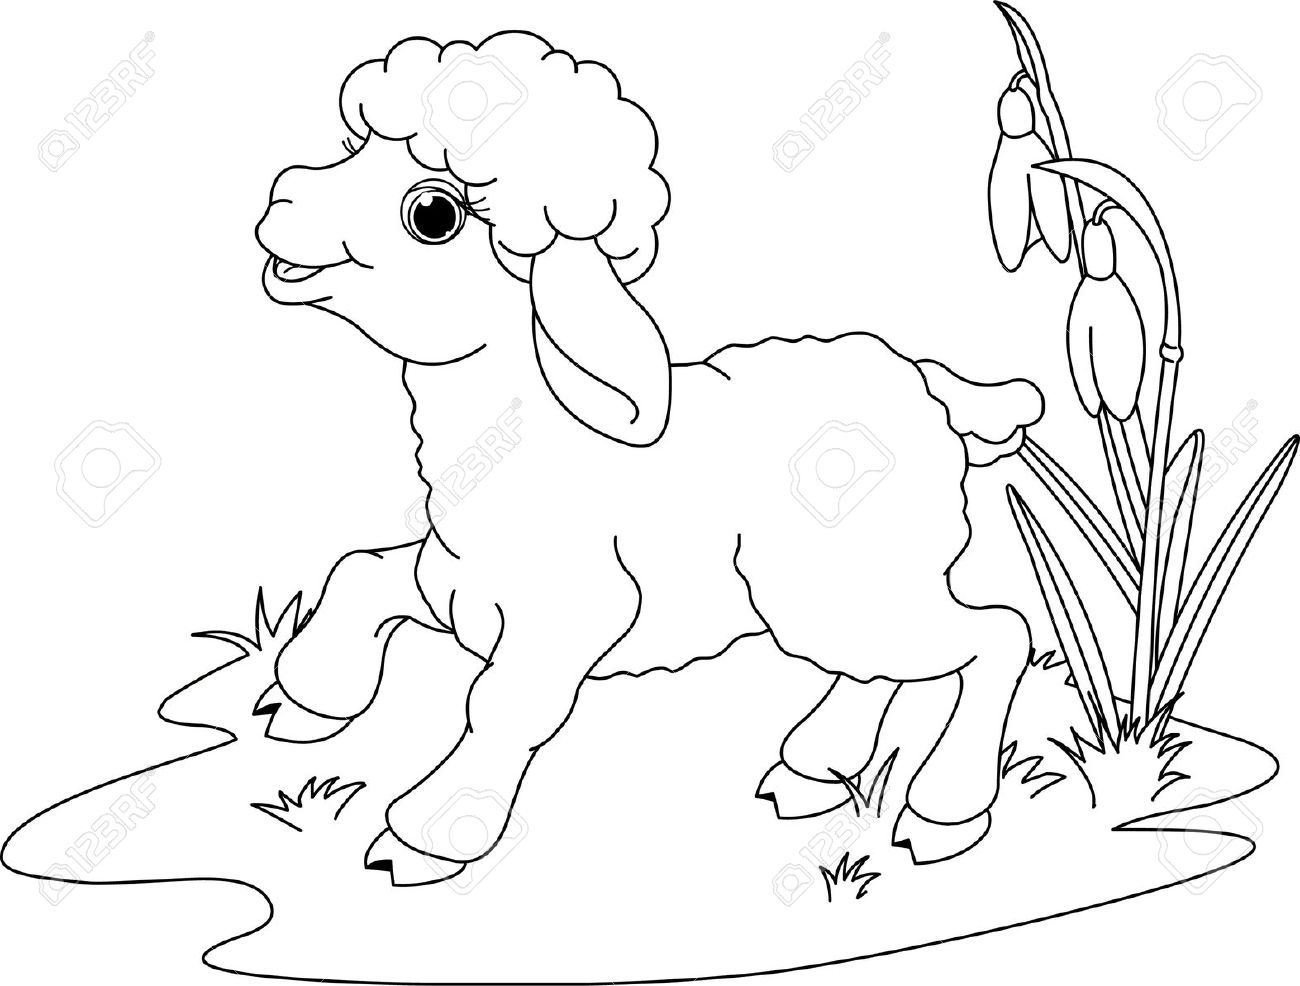 Easter Lamb Coloring Pages 002jpg 2 | cartoon | Pinterest